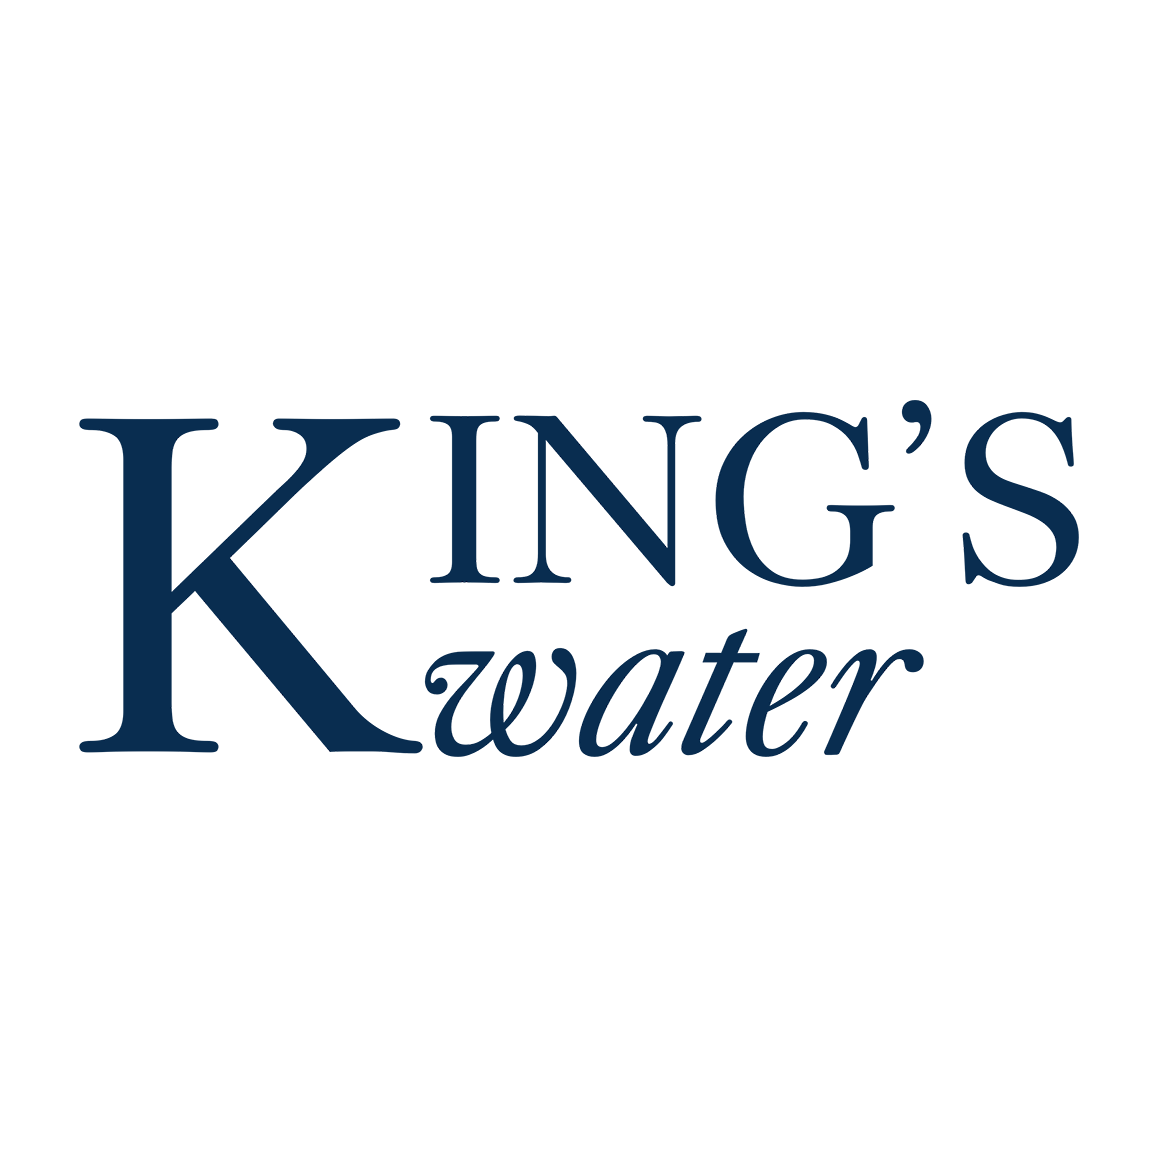 King's College London Water